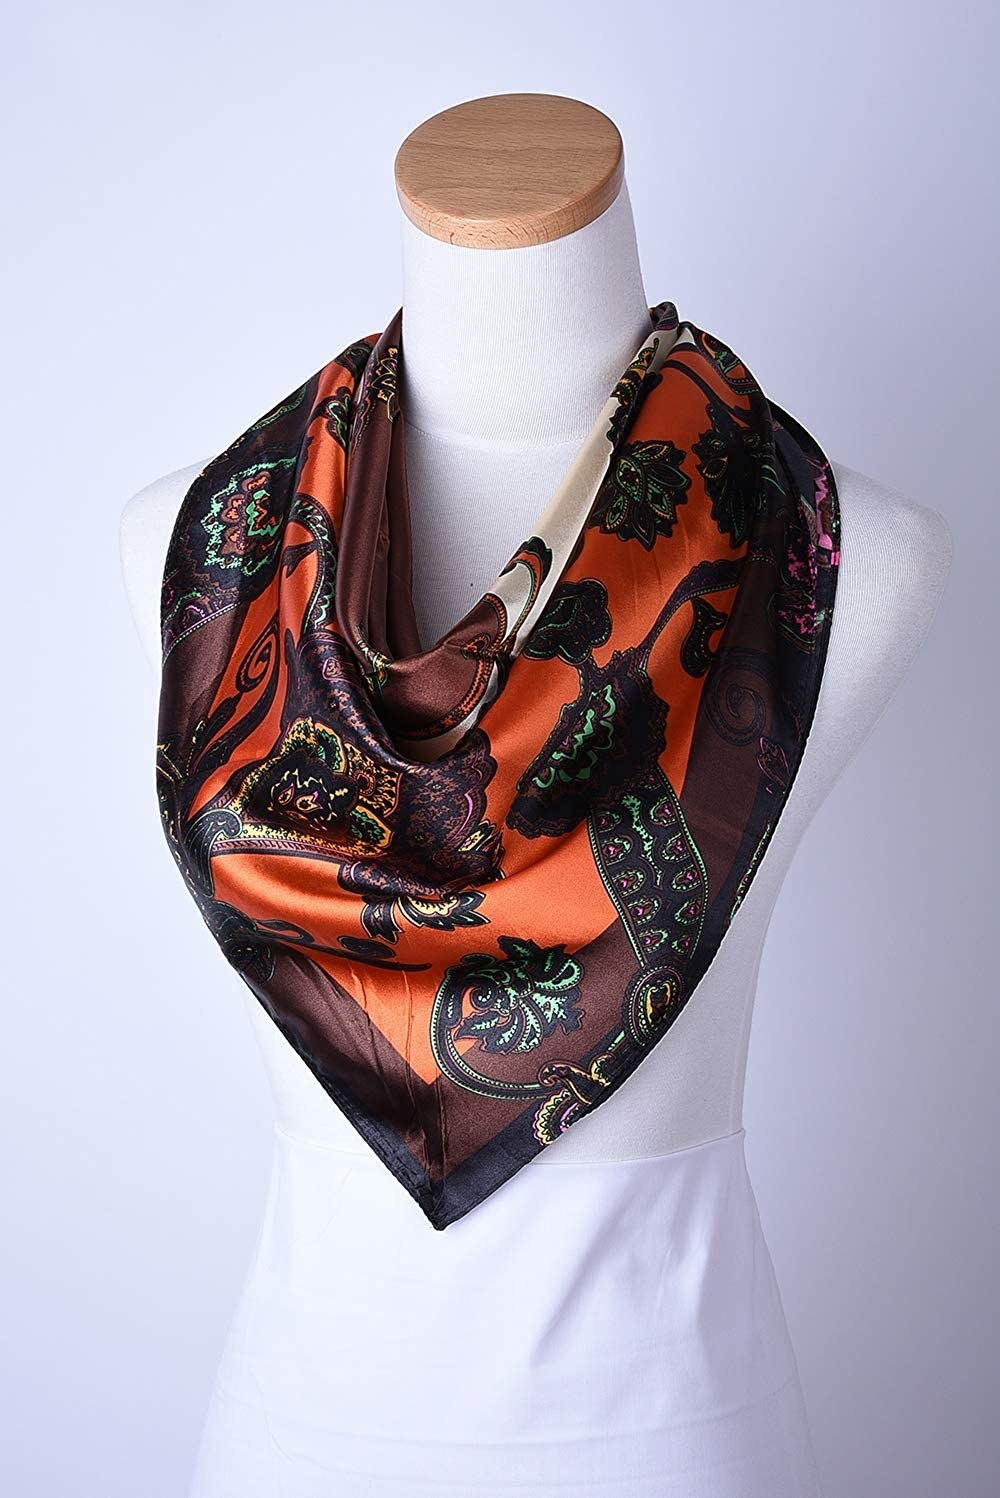 The multicolor (including orange and brown) scarf draped on a mannequin